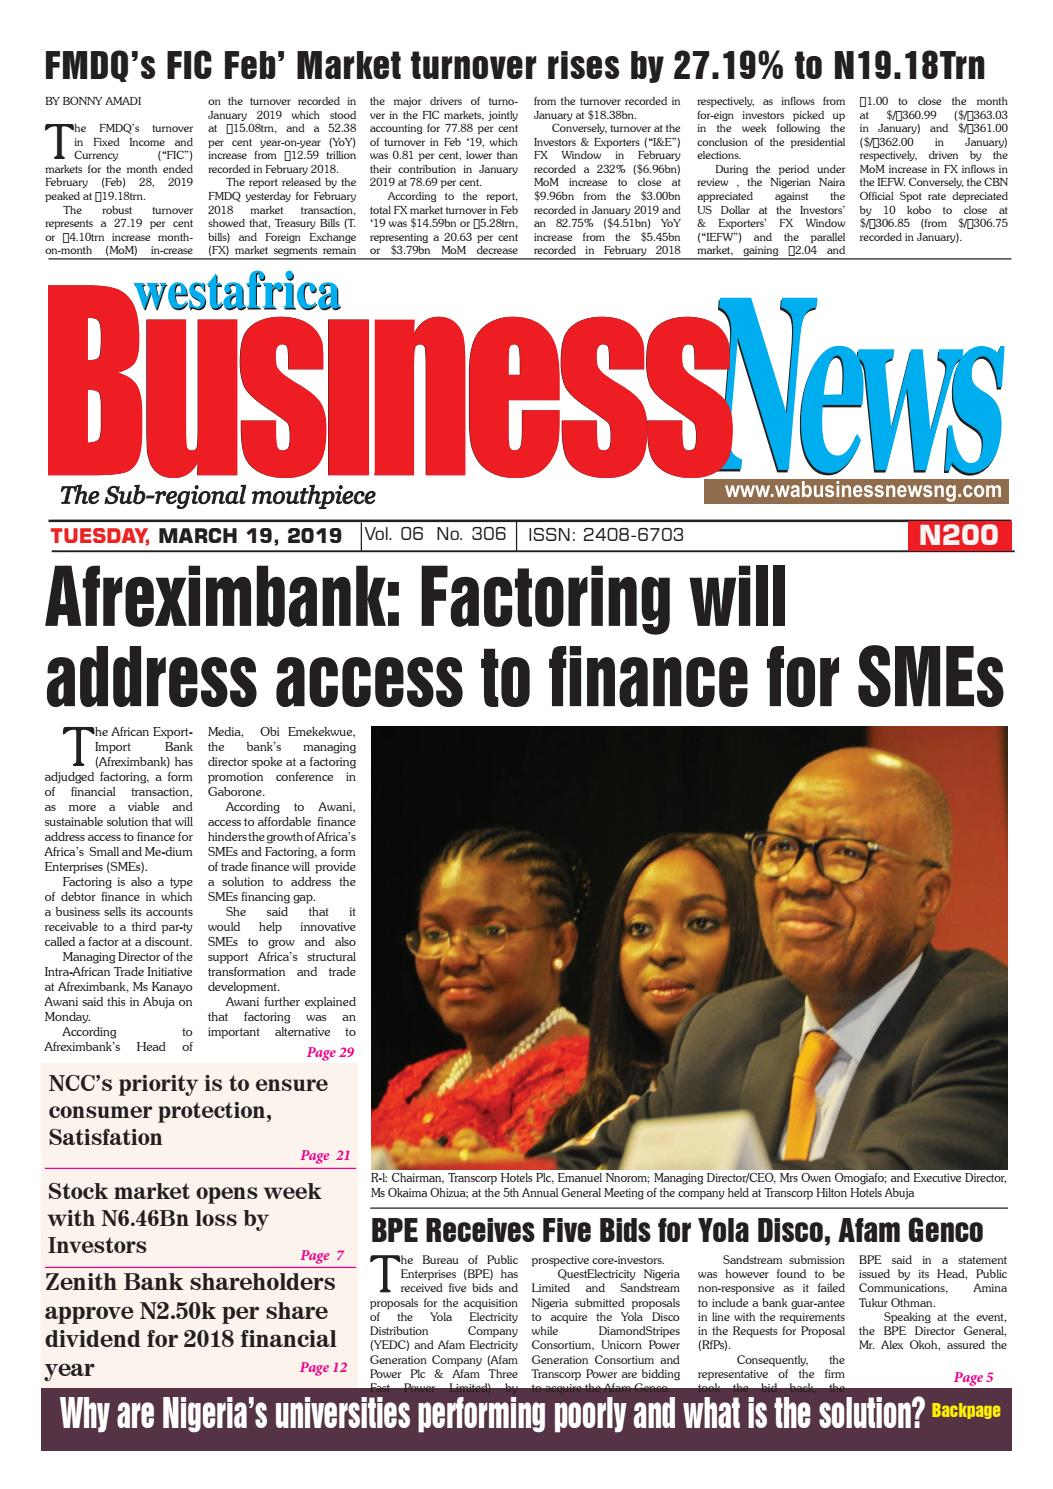 Westafrica BusinessNews Tuesday, March 19, 2019 by